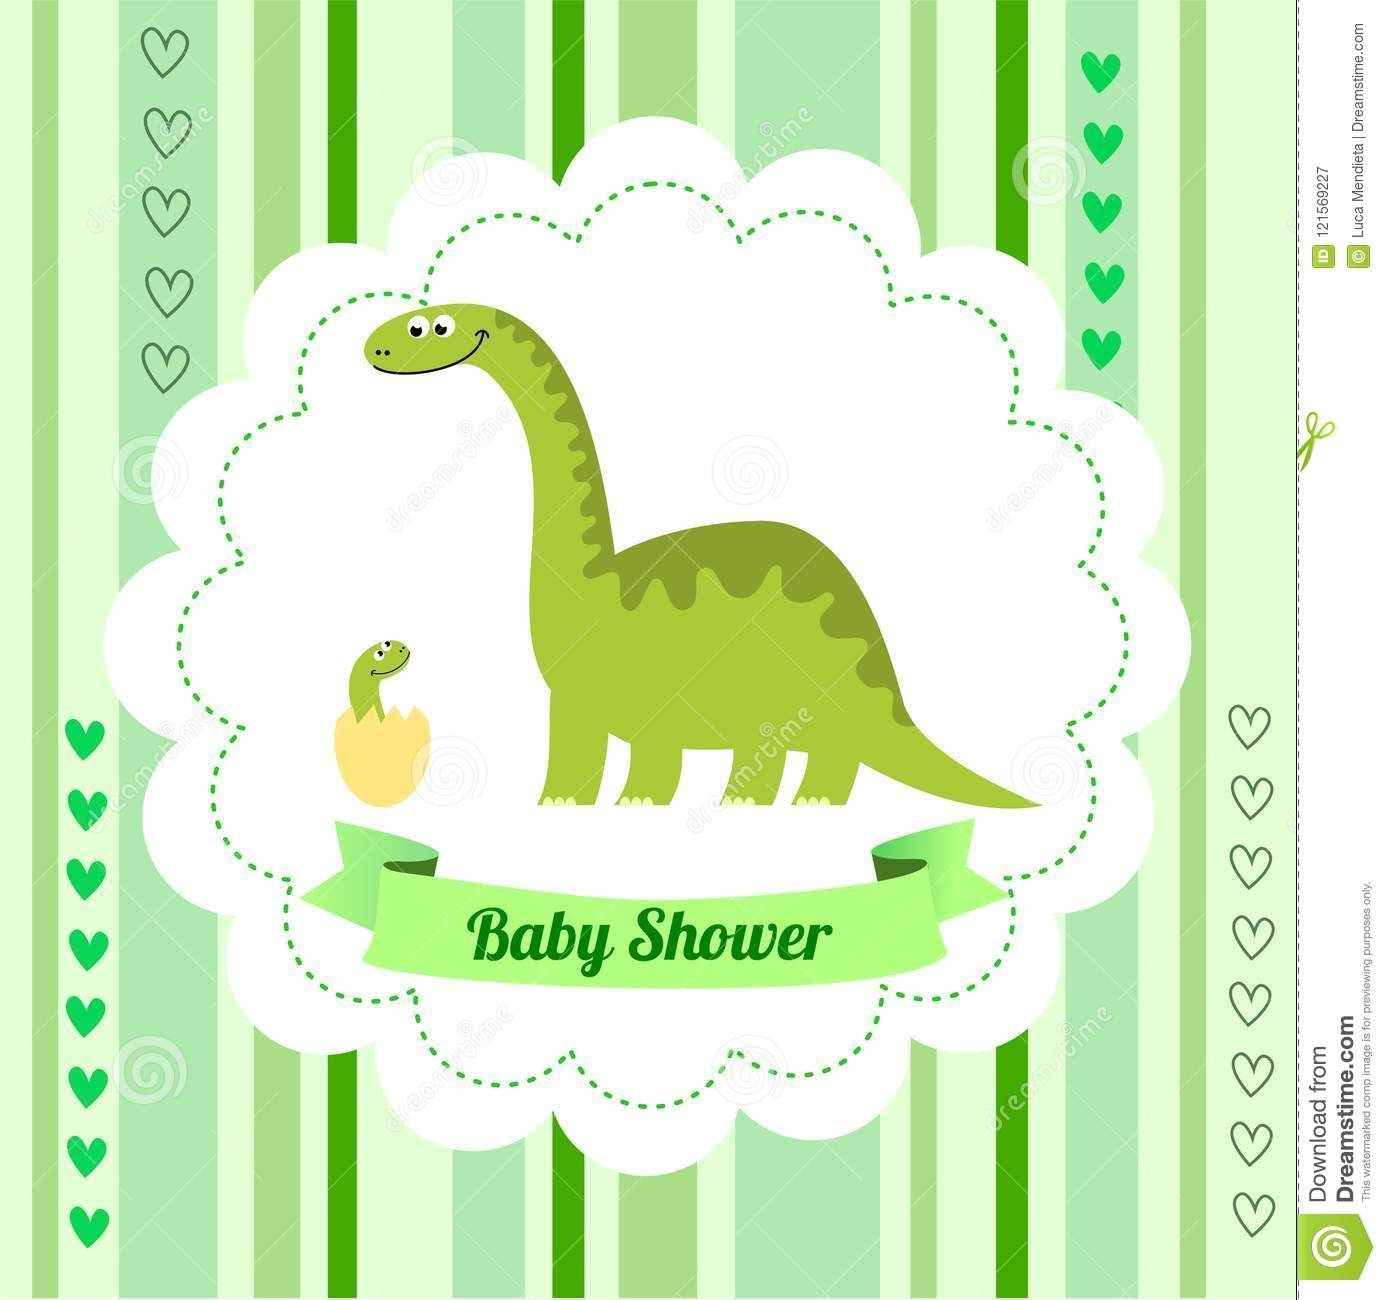 Cute Card Template Of A Baby Shower Invitation With A Dinosaur Stock - Free Printable Dinosaur Baby Shower Invitations